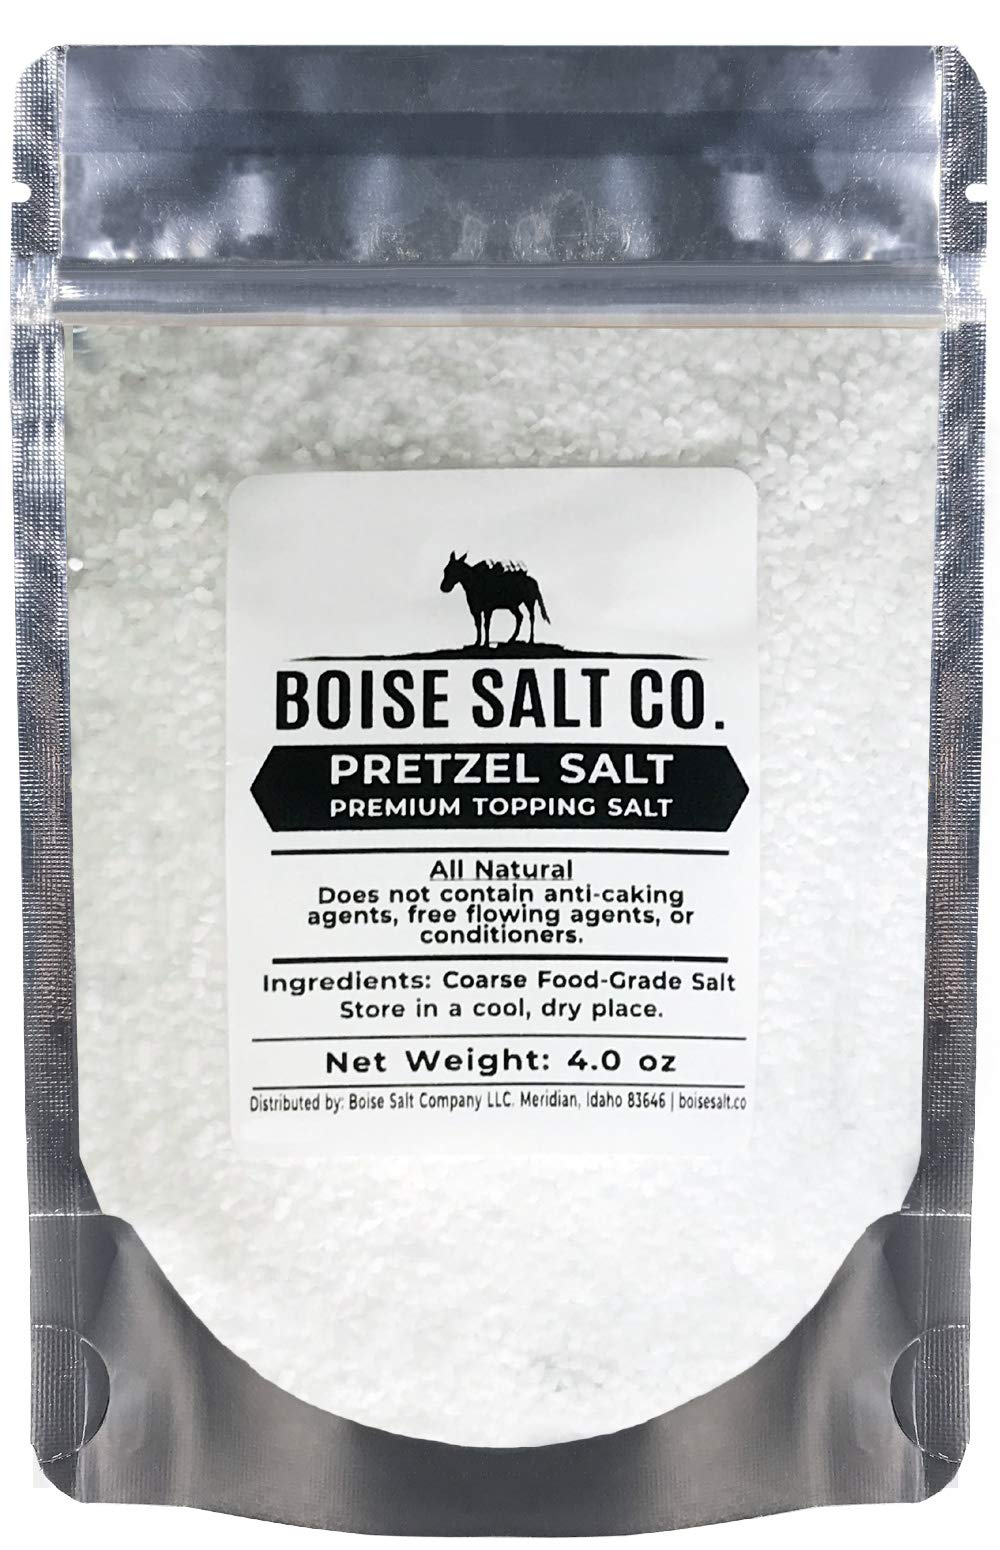 Boise Salt Co. Pretzel Salt – 4 Ounce Resealable Standup Pouch (4 oz)